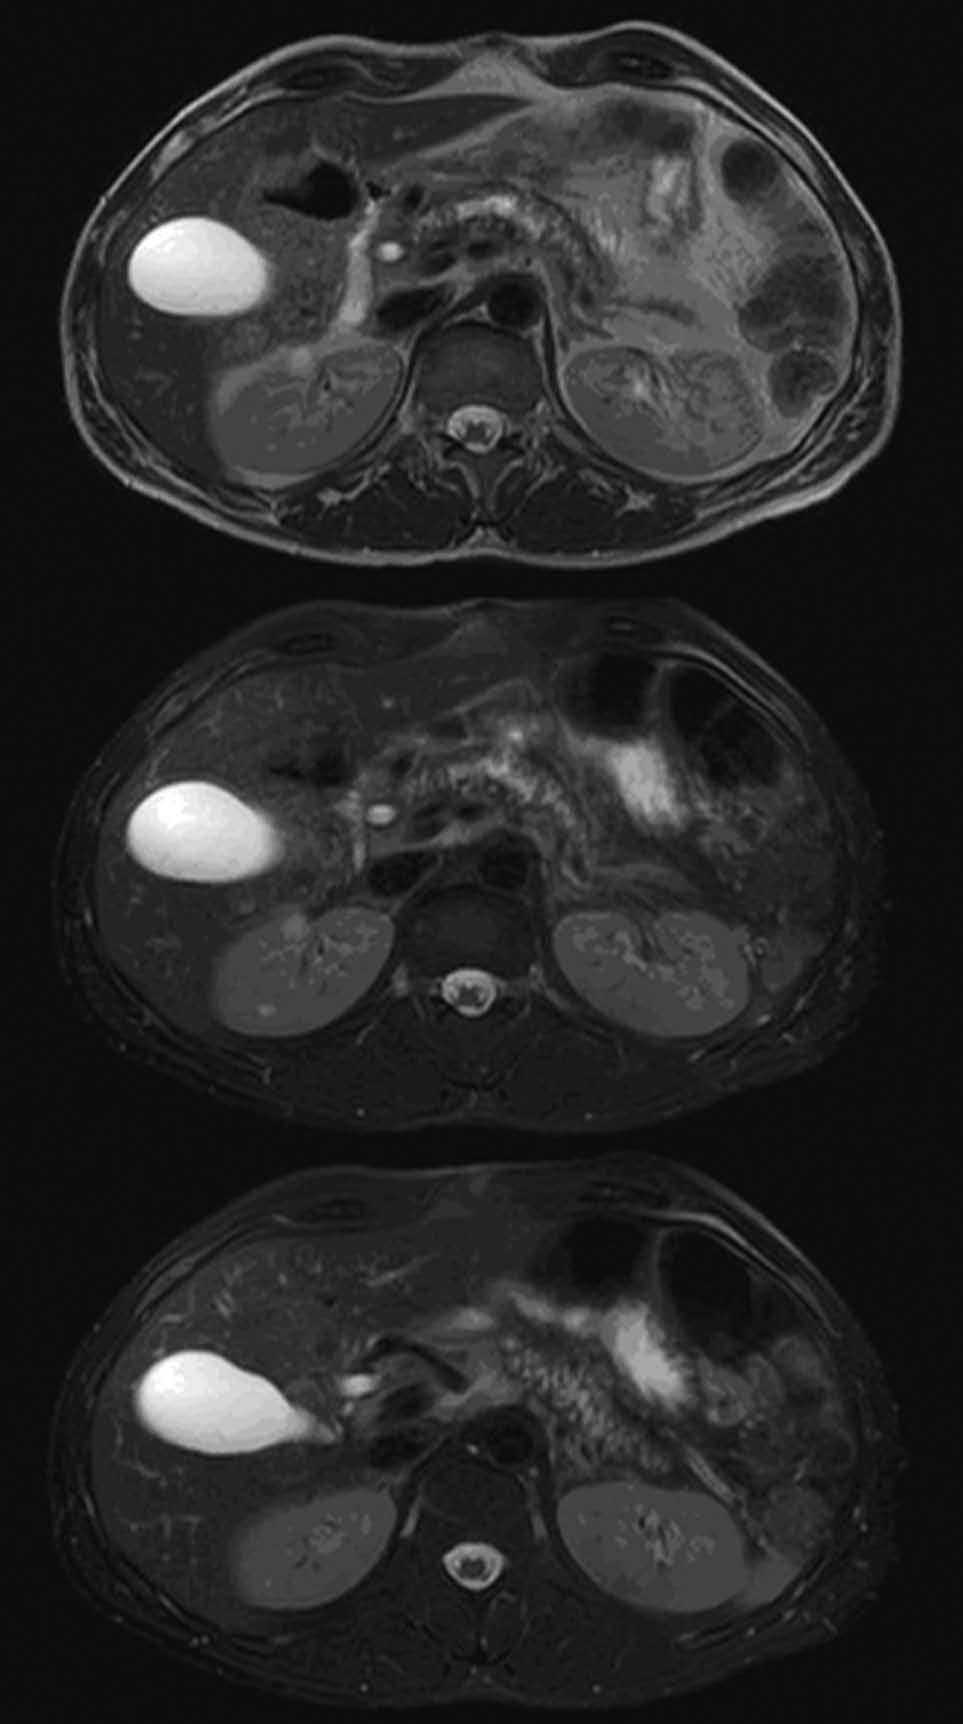 Hansen TM et al. Magnetic resonance imaging in chronic pancreatitis patients rely on both clinical and imaging information such as the Mayo Clinic diagnostic criteria [1].